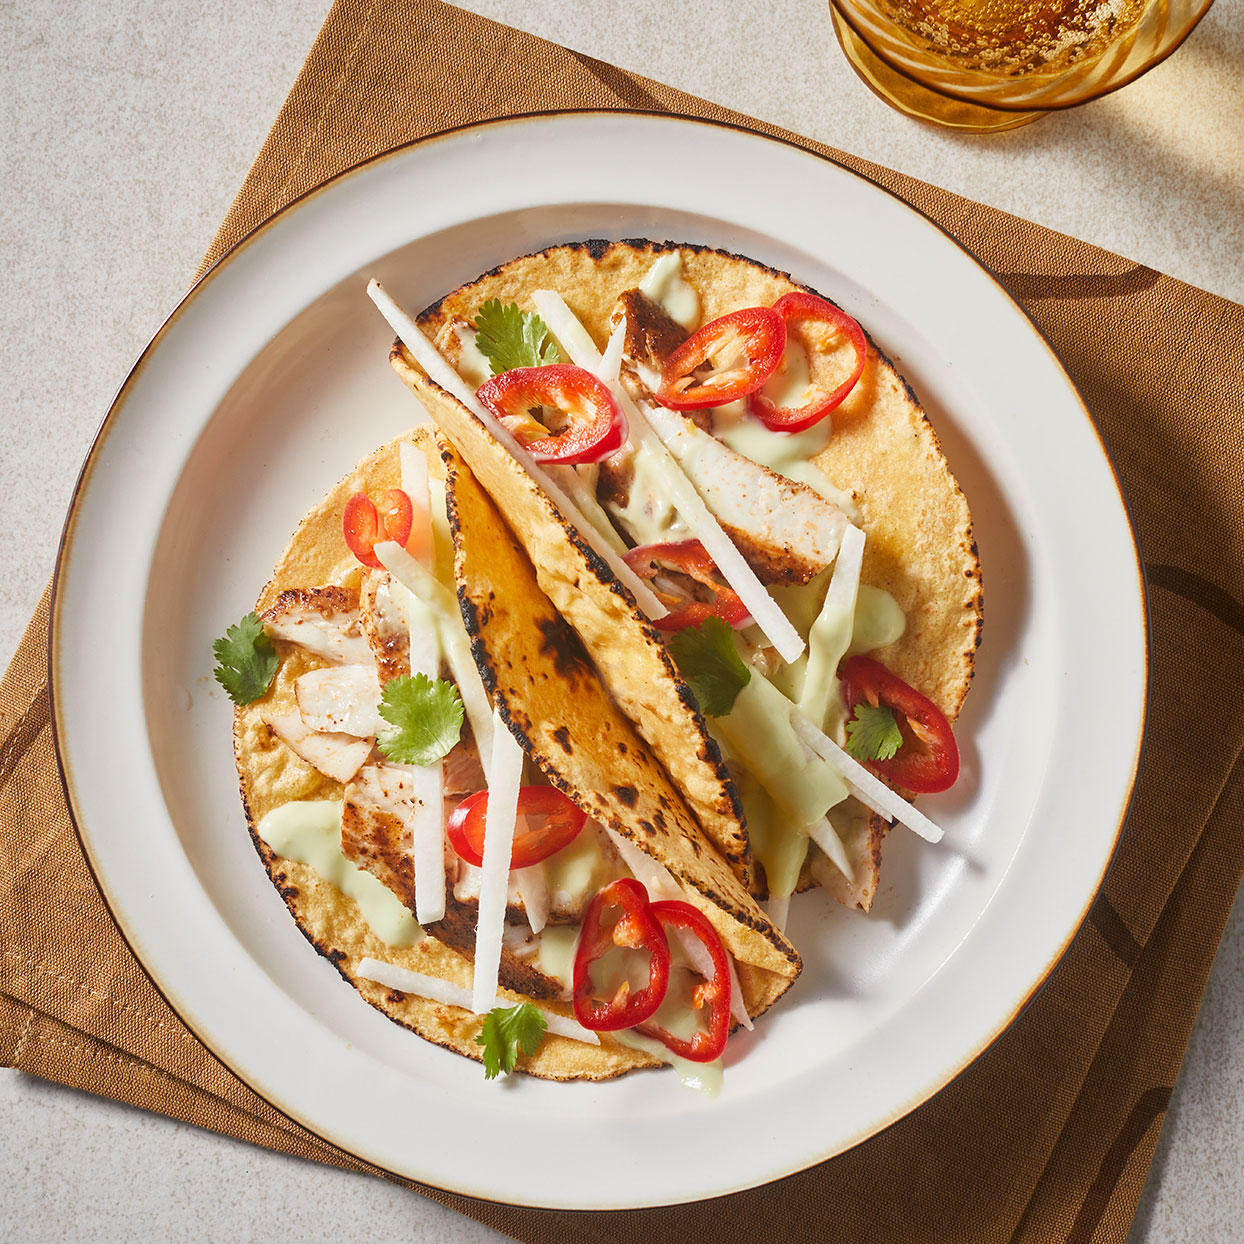 In this mahi-mahi fish taco recipe, chili-coated fish gets a lovely crust from the hot pan. The creaminess of the avocado sauce complements the crisp crunch of the jicama, and it's all pulled together in 20 minutes. Source: EatingWell.com, March 2020